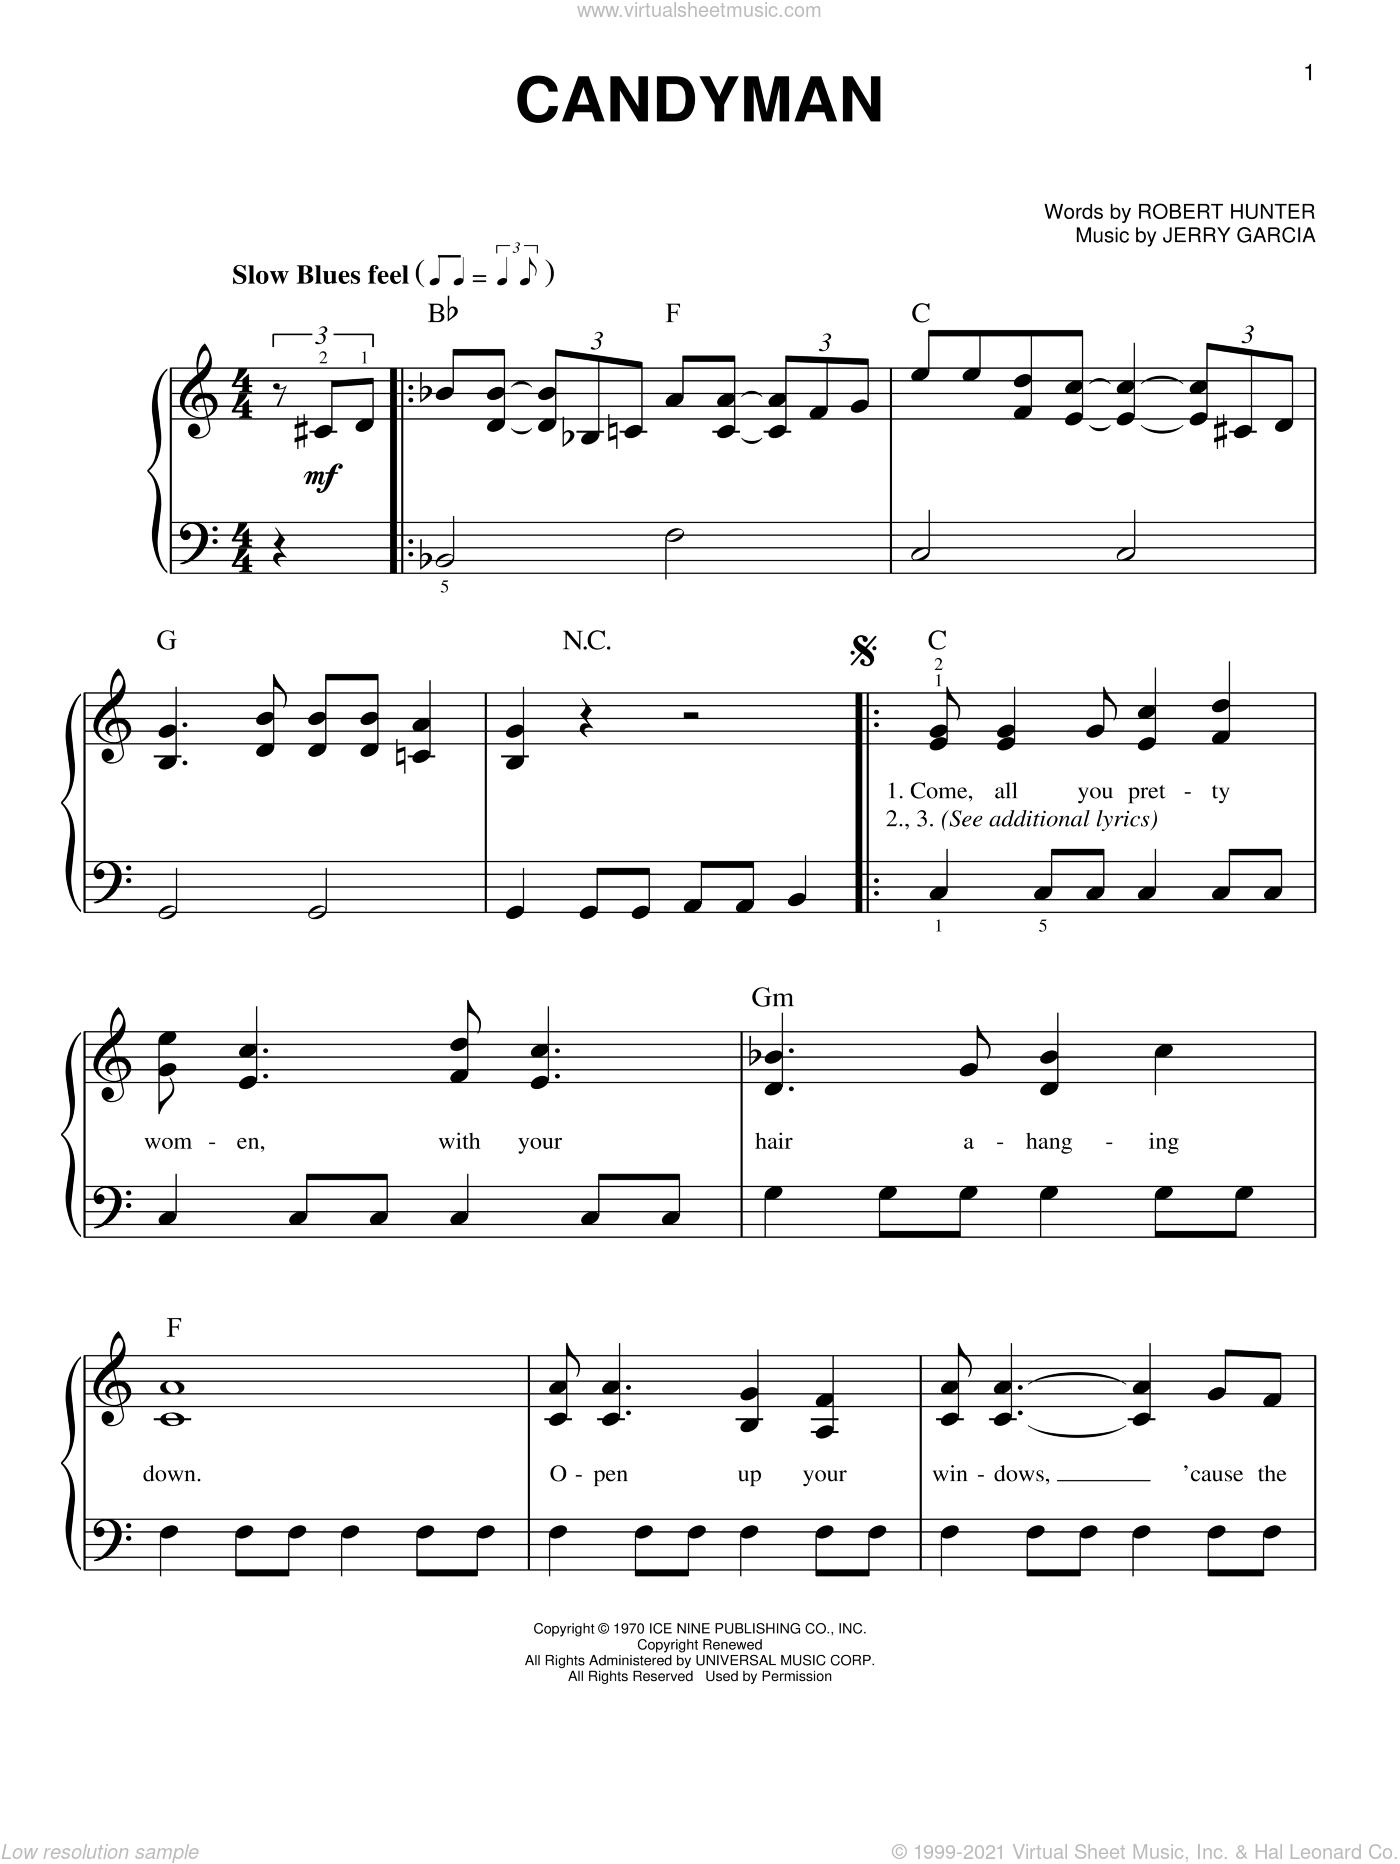 Candyman sheet music for piano solo by Grateful Dead, Jerry Garcia and Robert Hunter, easy